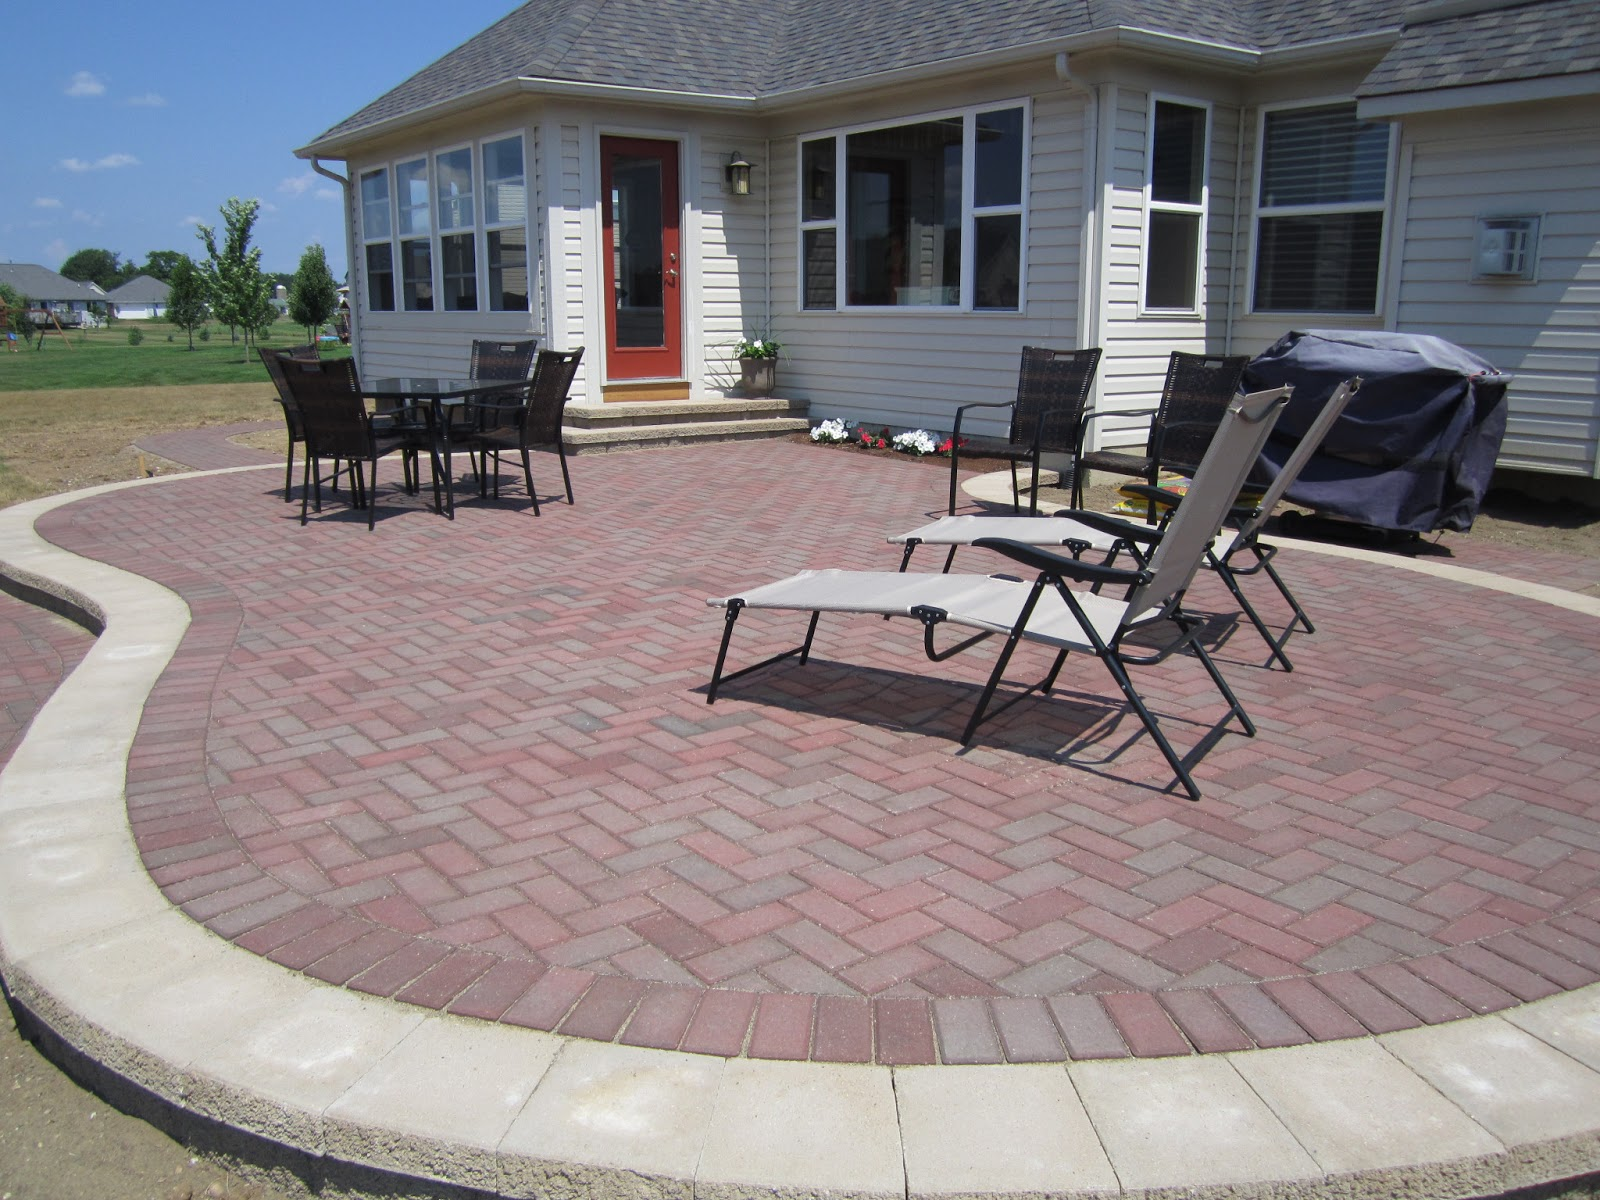 Using A High Quality Paving Stone Or Paver Block Is Essential To Maximum  Results